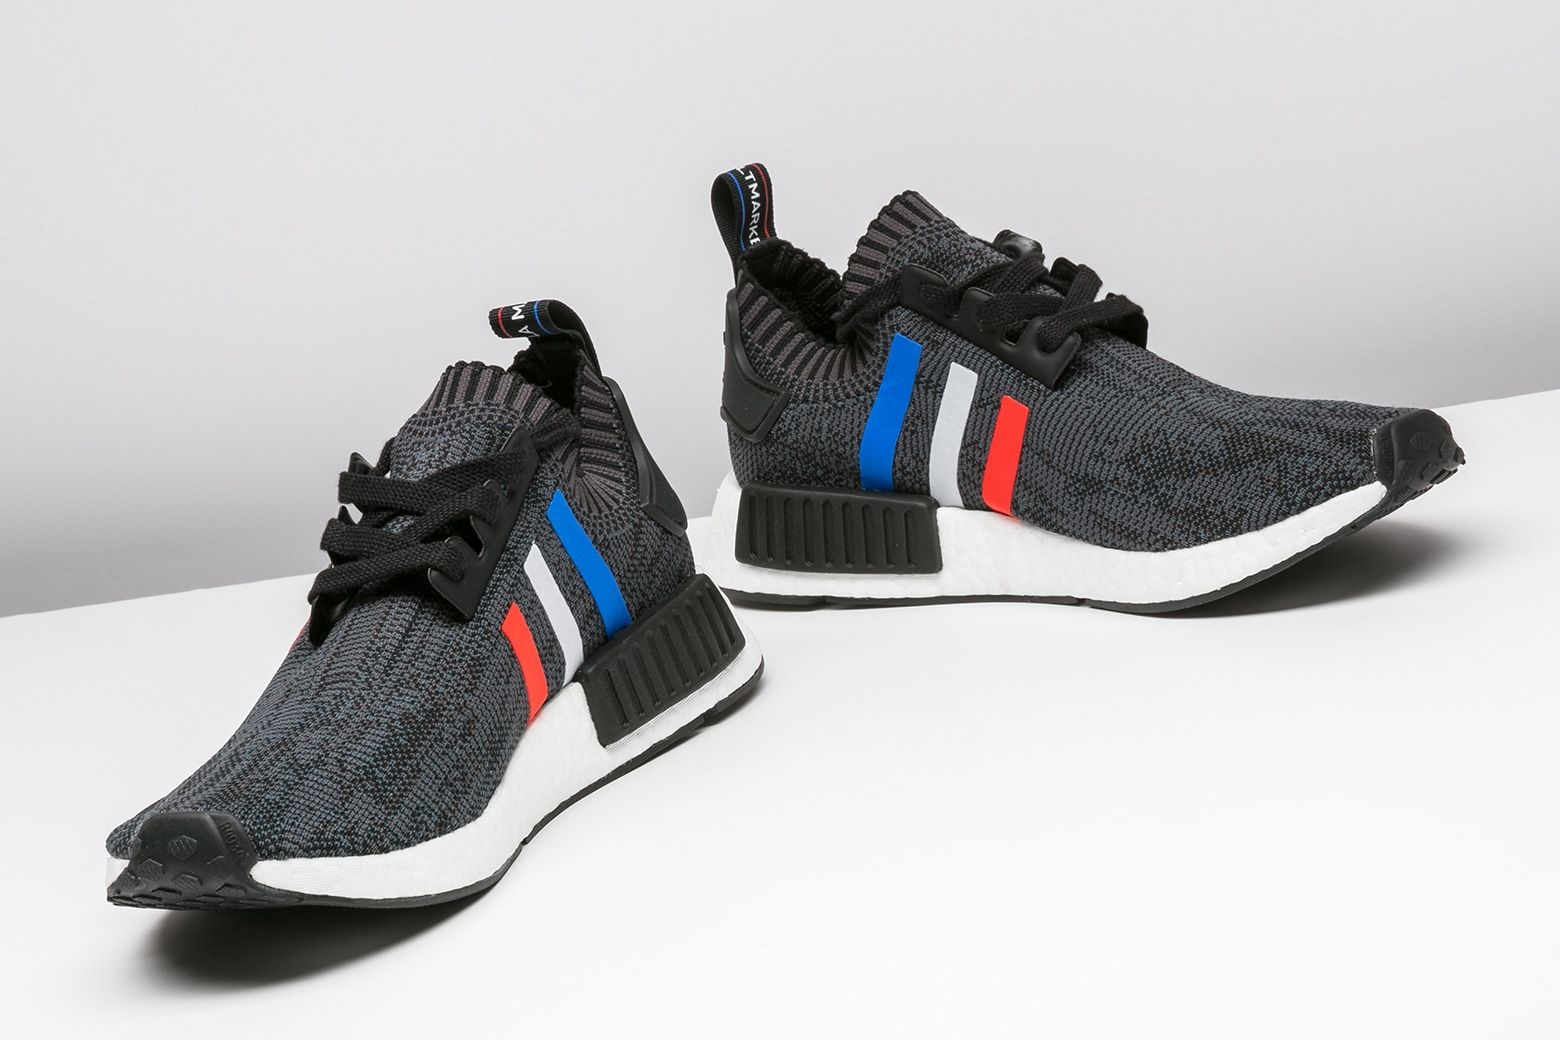 fdc9808ca The adidas NMD R1